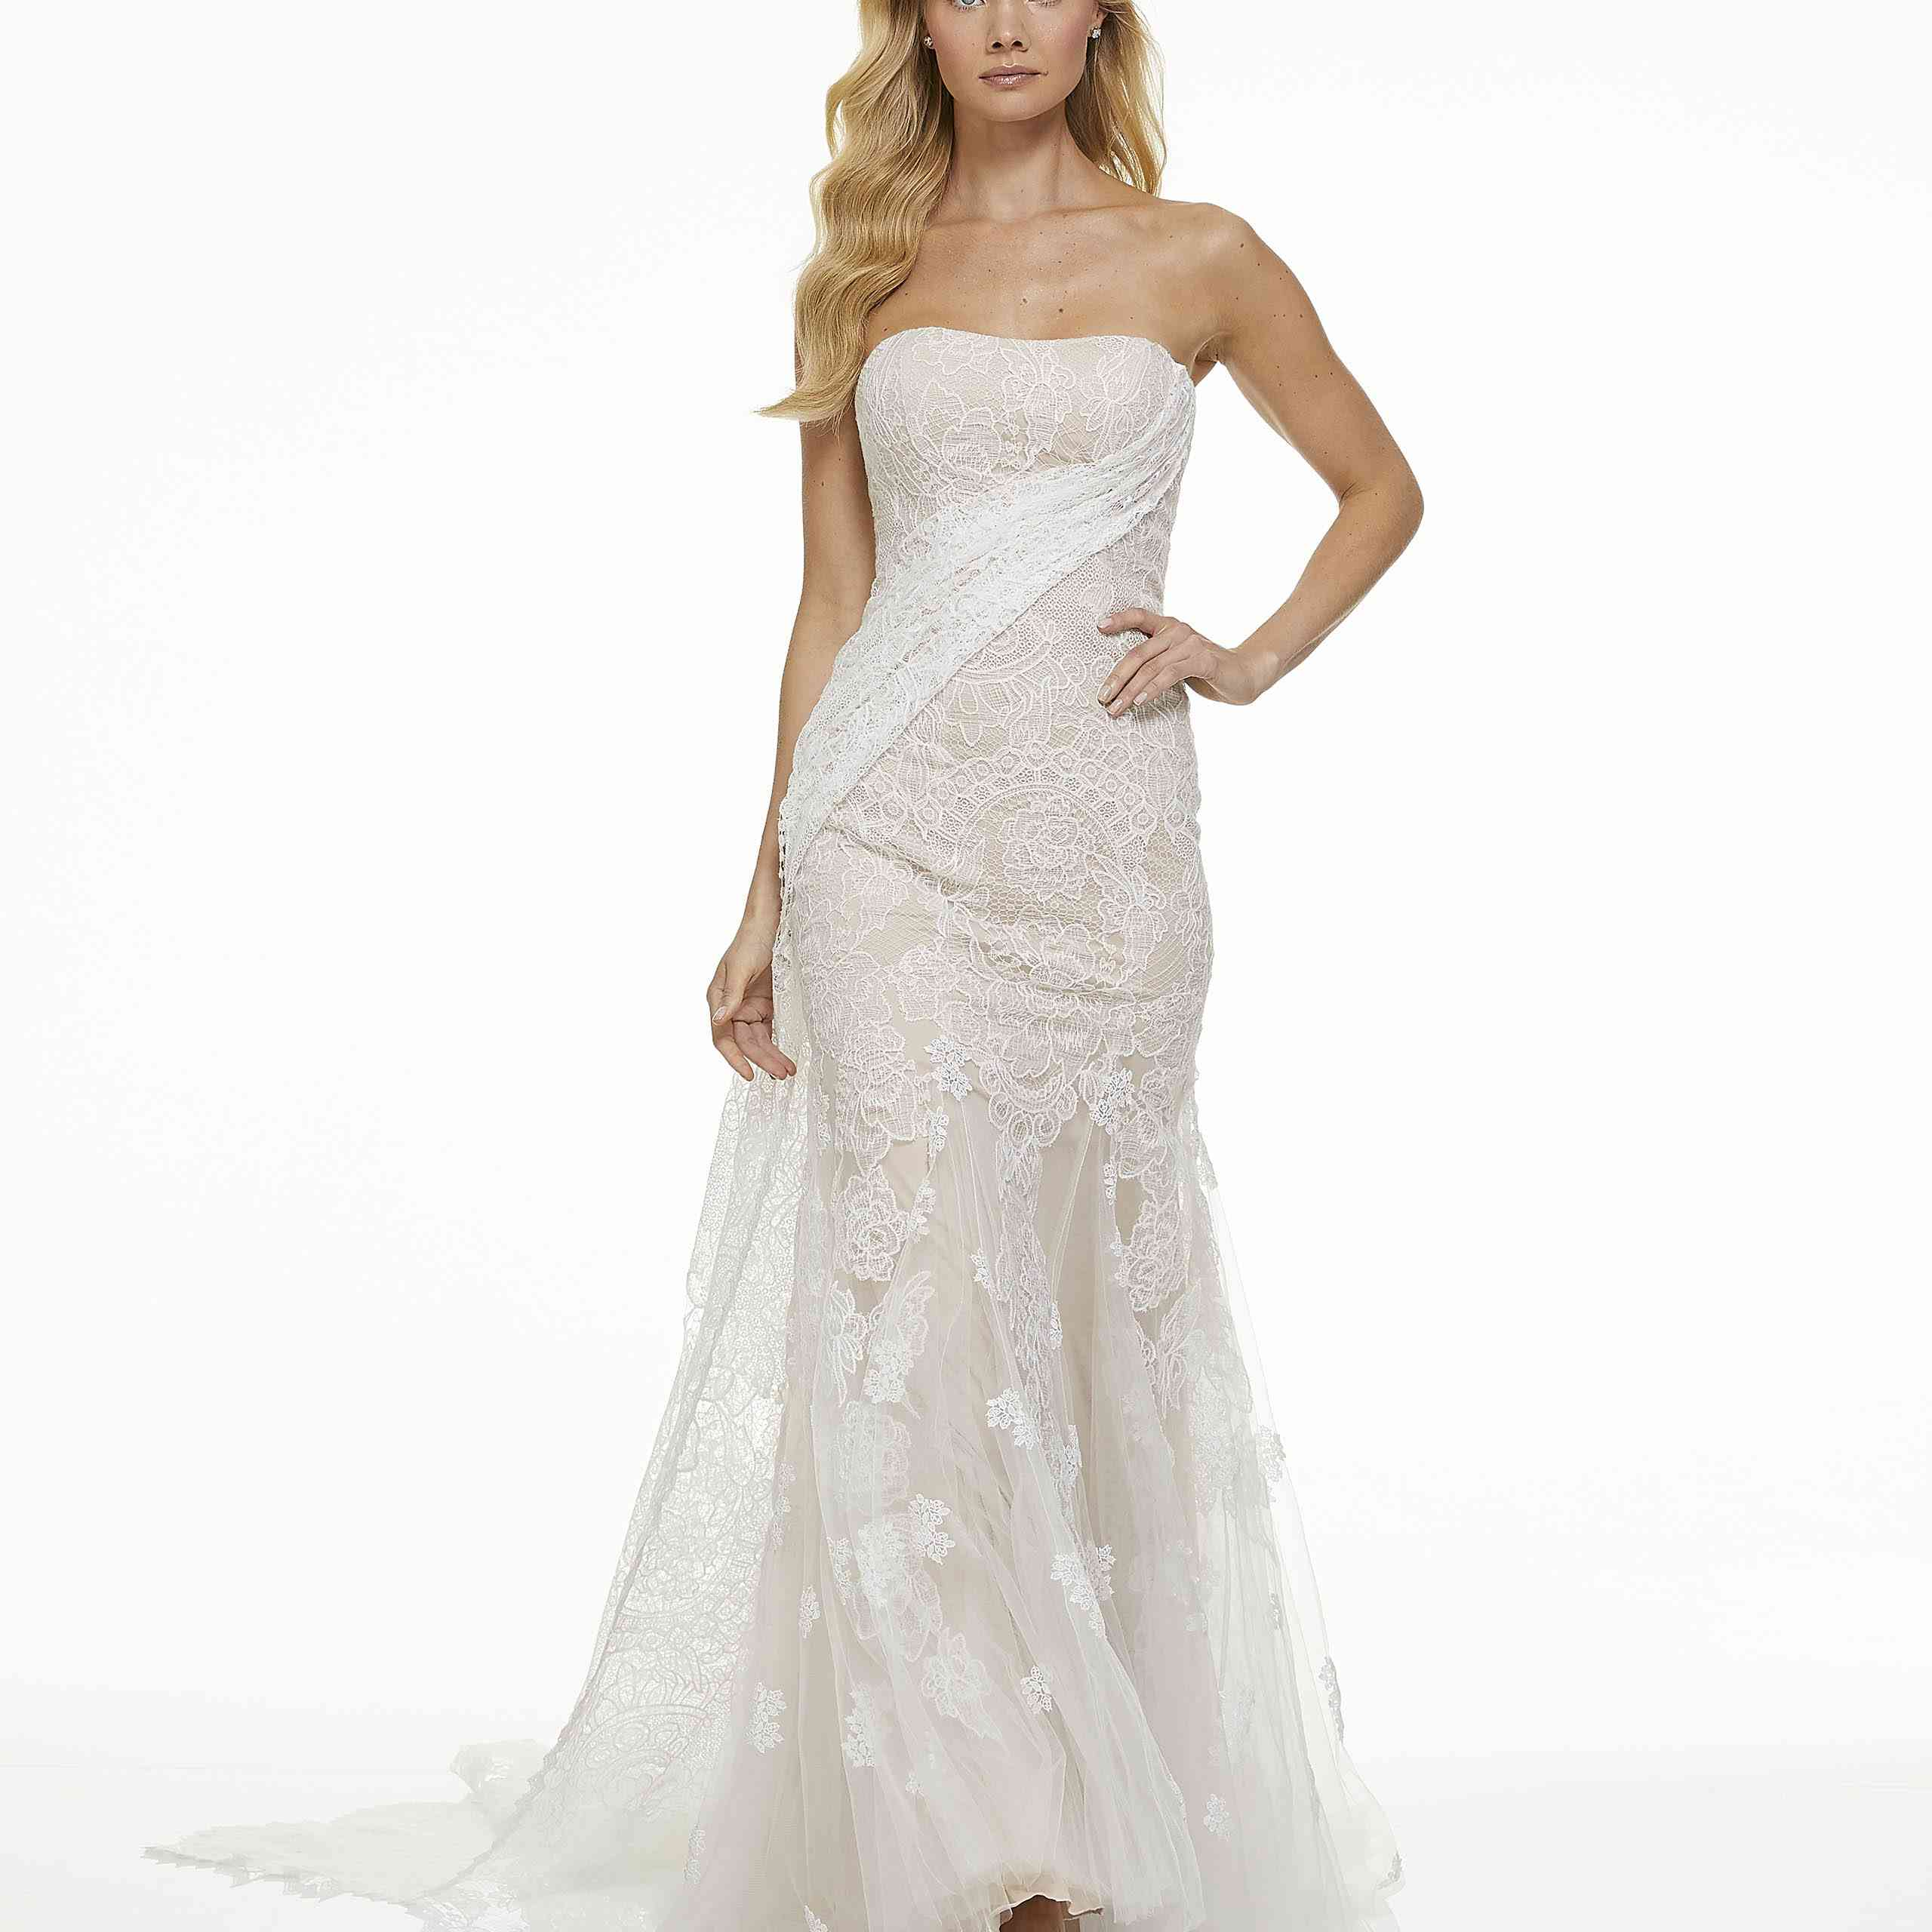 Model in strapless lace wedding dress